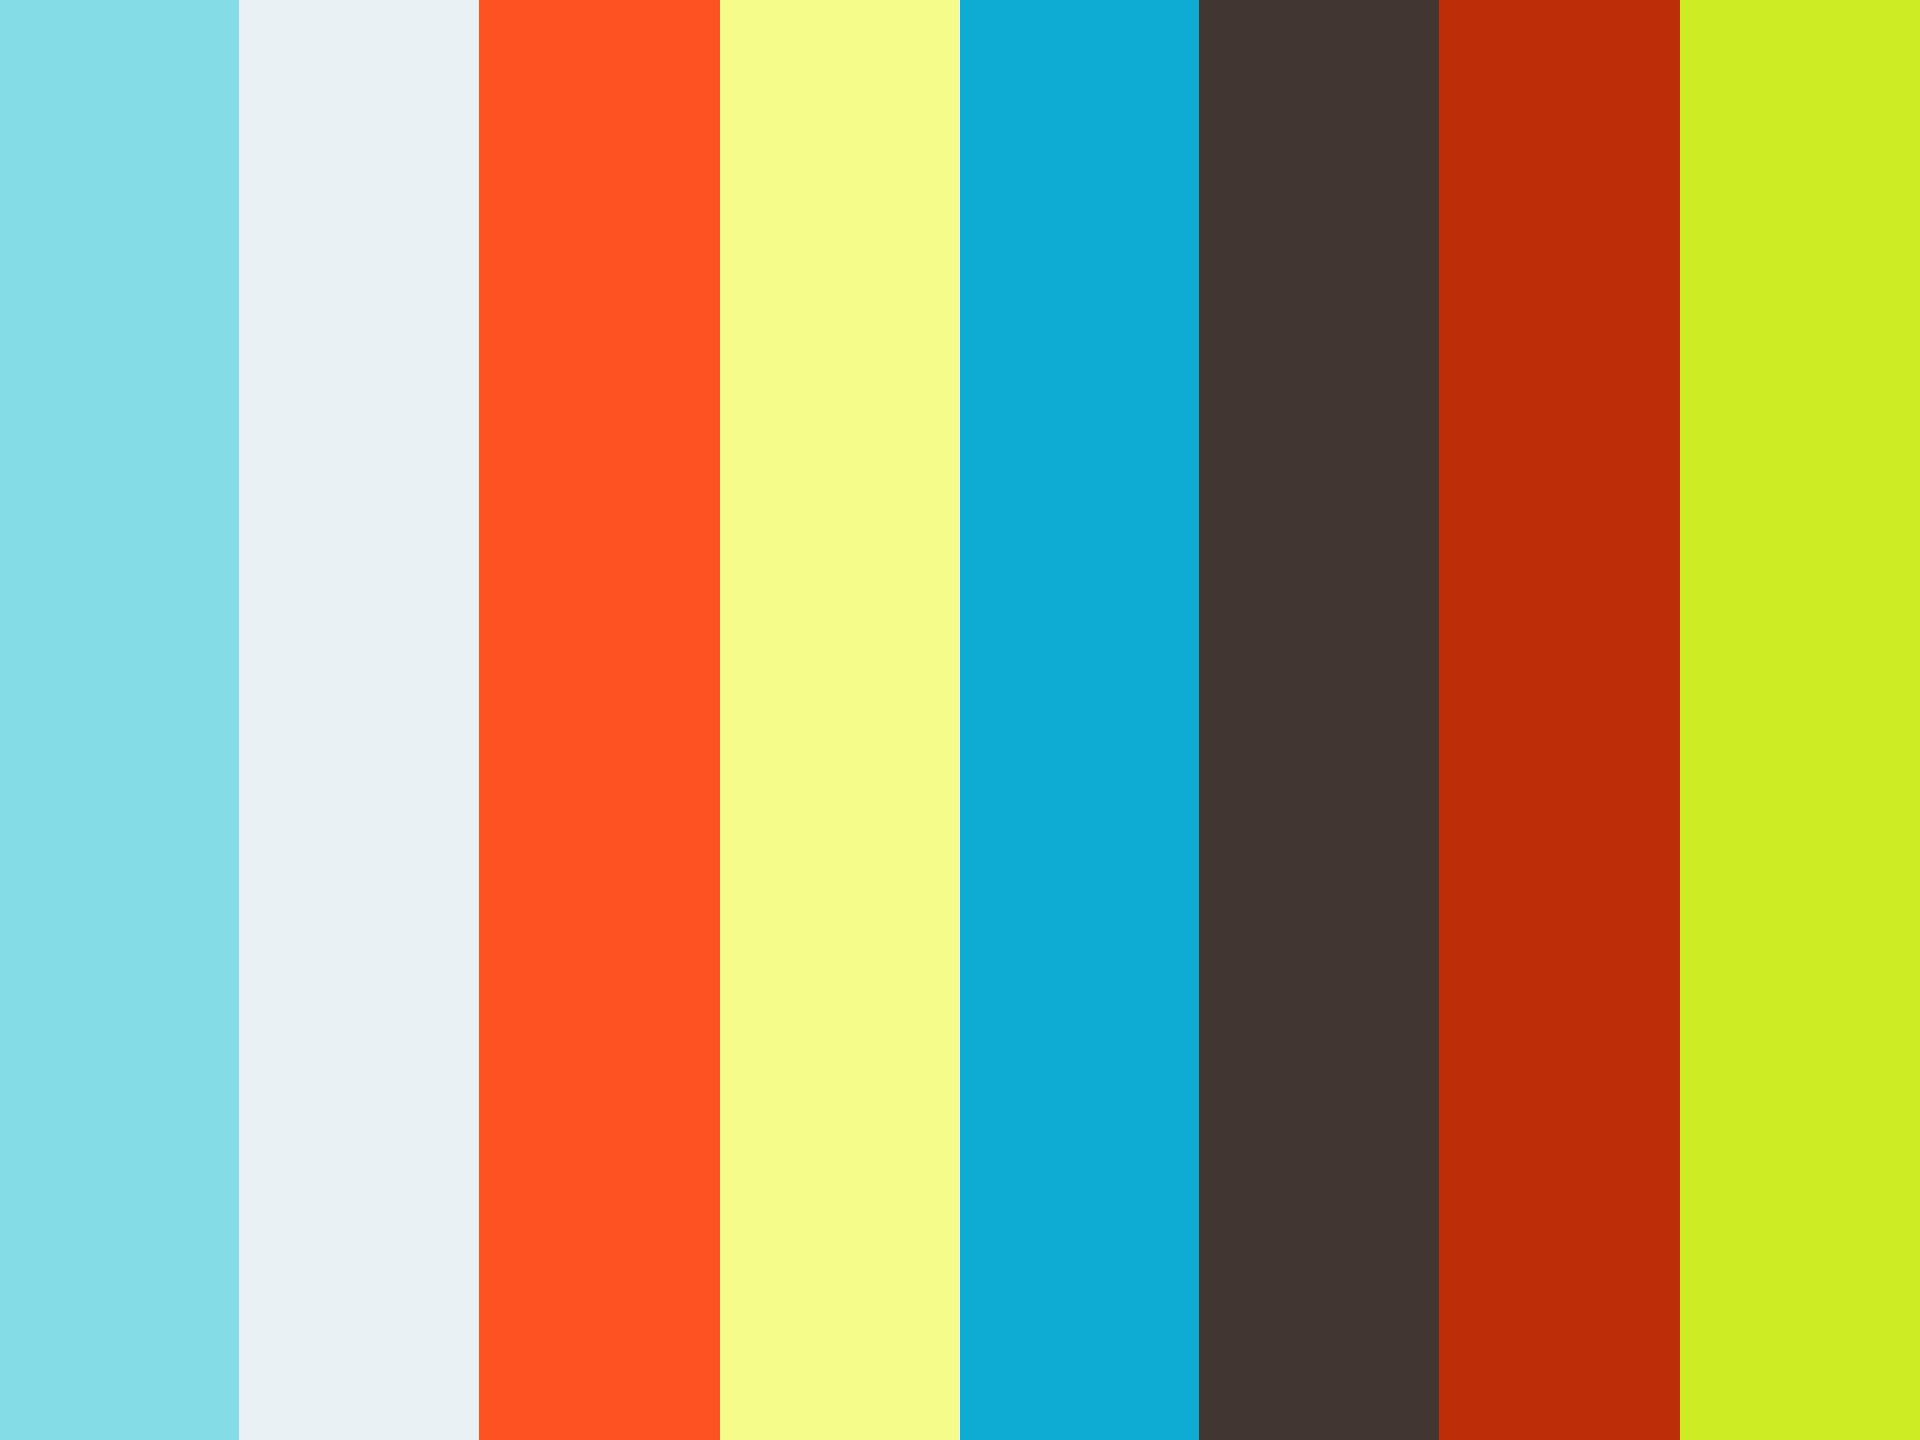 Sports For Sports Dietitian Job Description | www.sportssrc.com